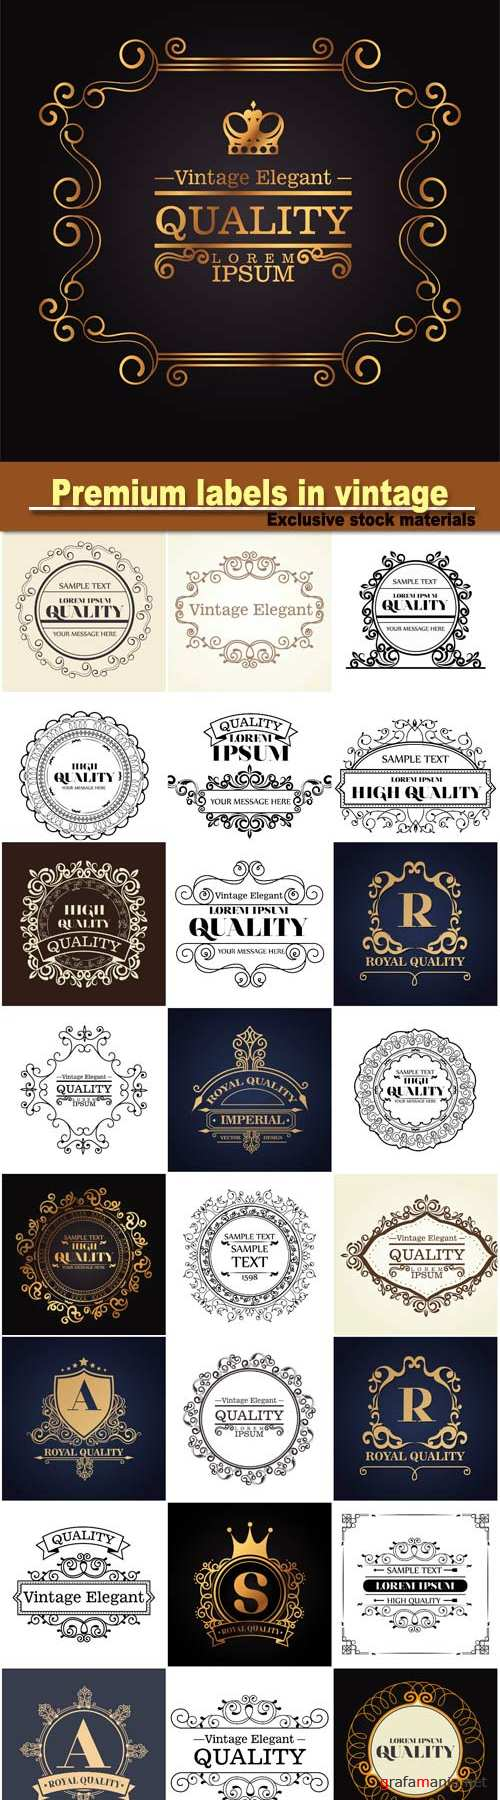 Premium labels in vintage style